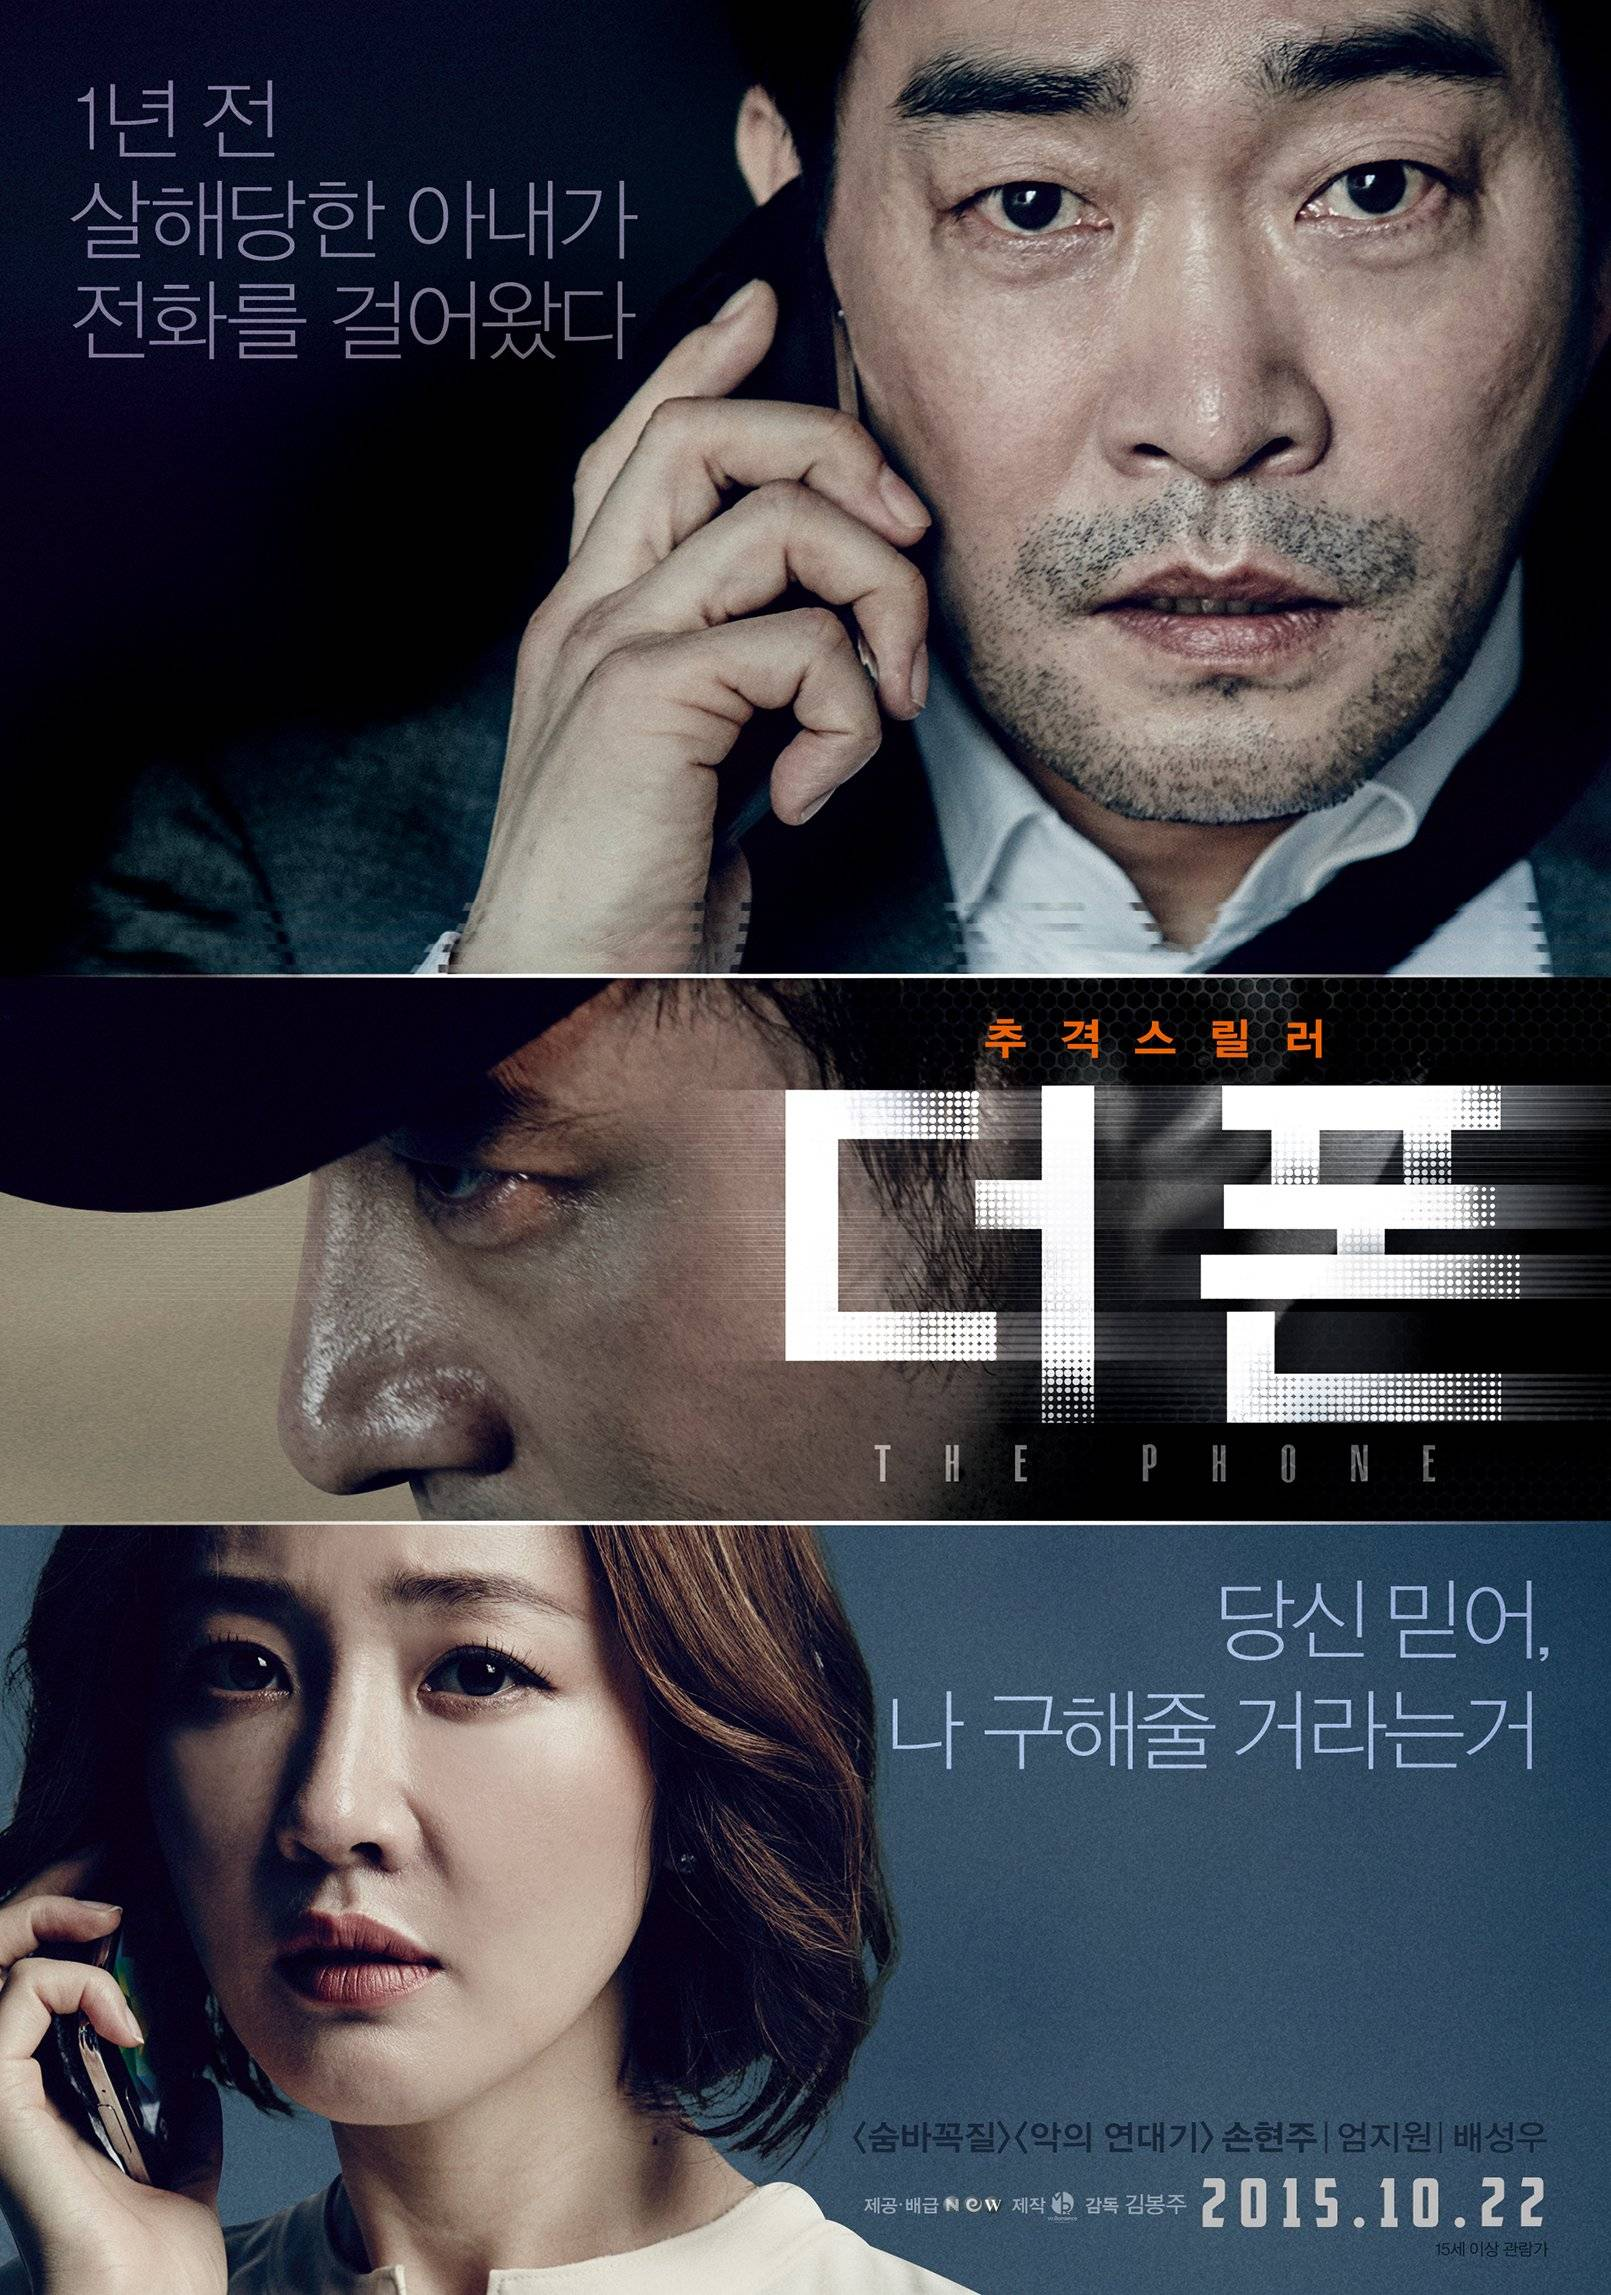 Added New Posters Stills And S Trailer For The Upcoming Korean Movie The Phone